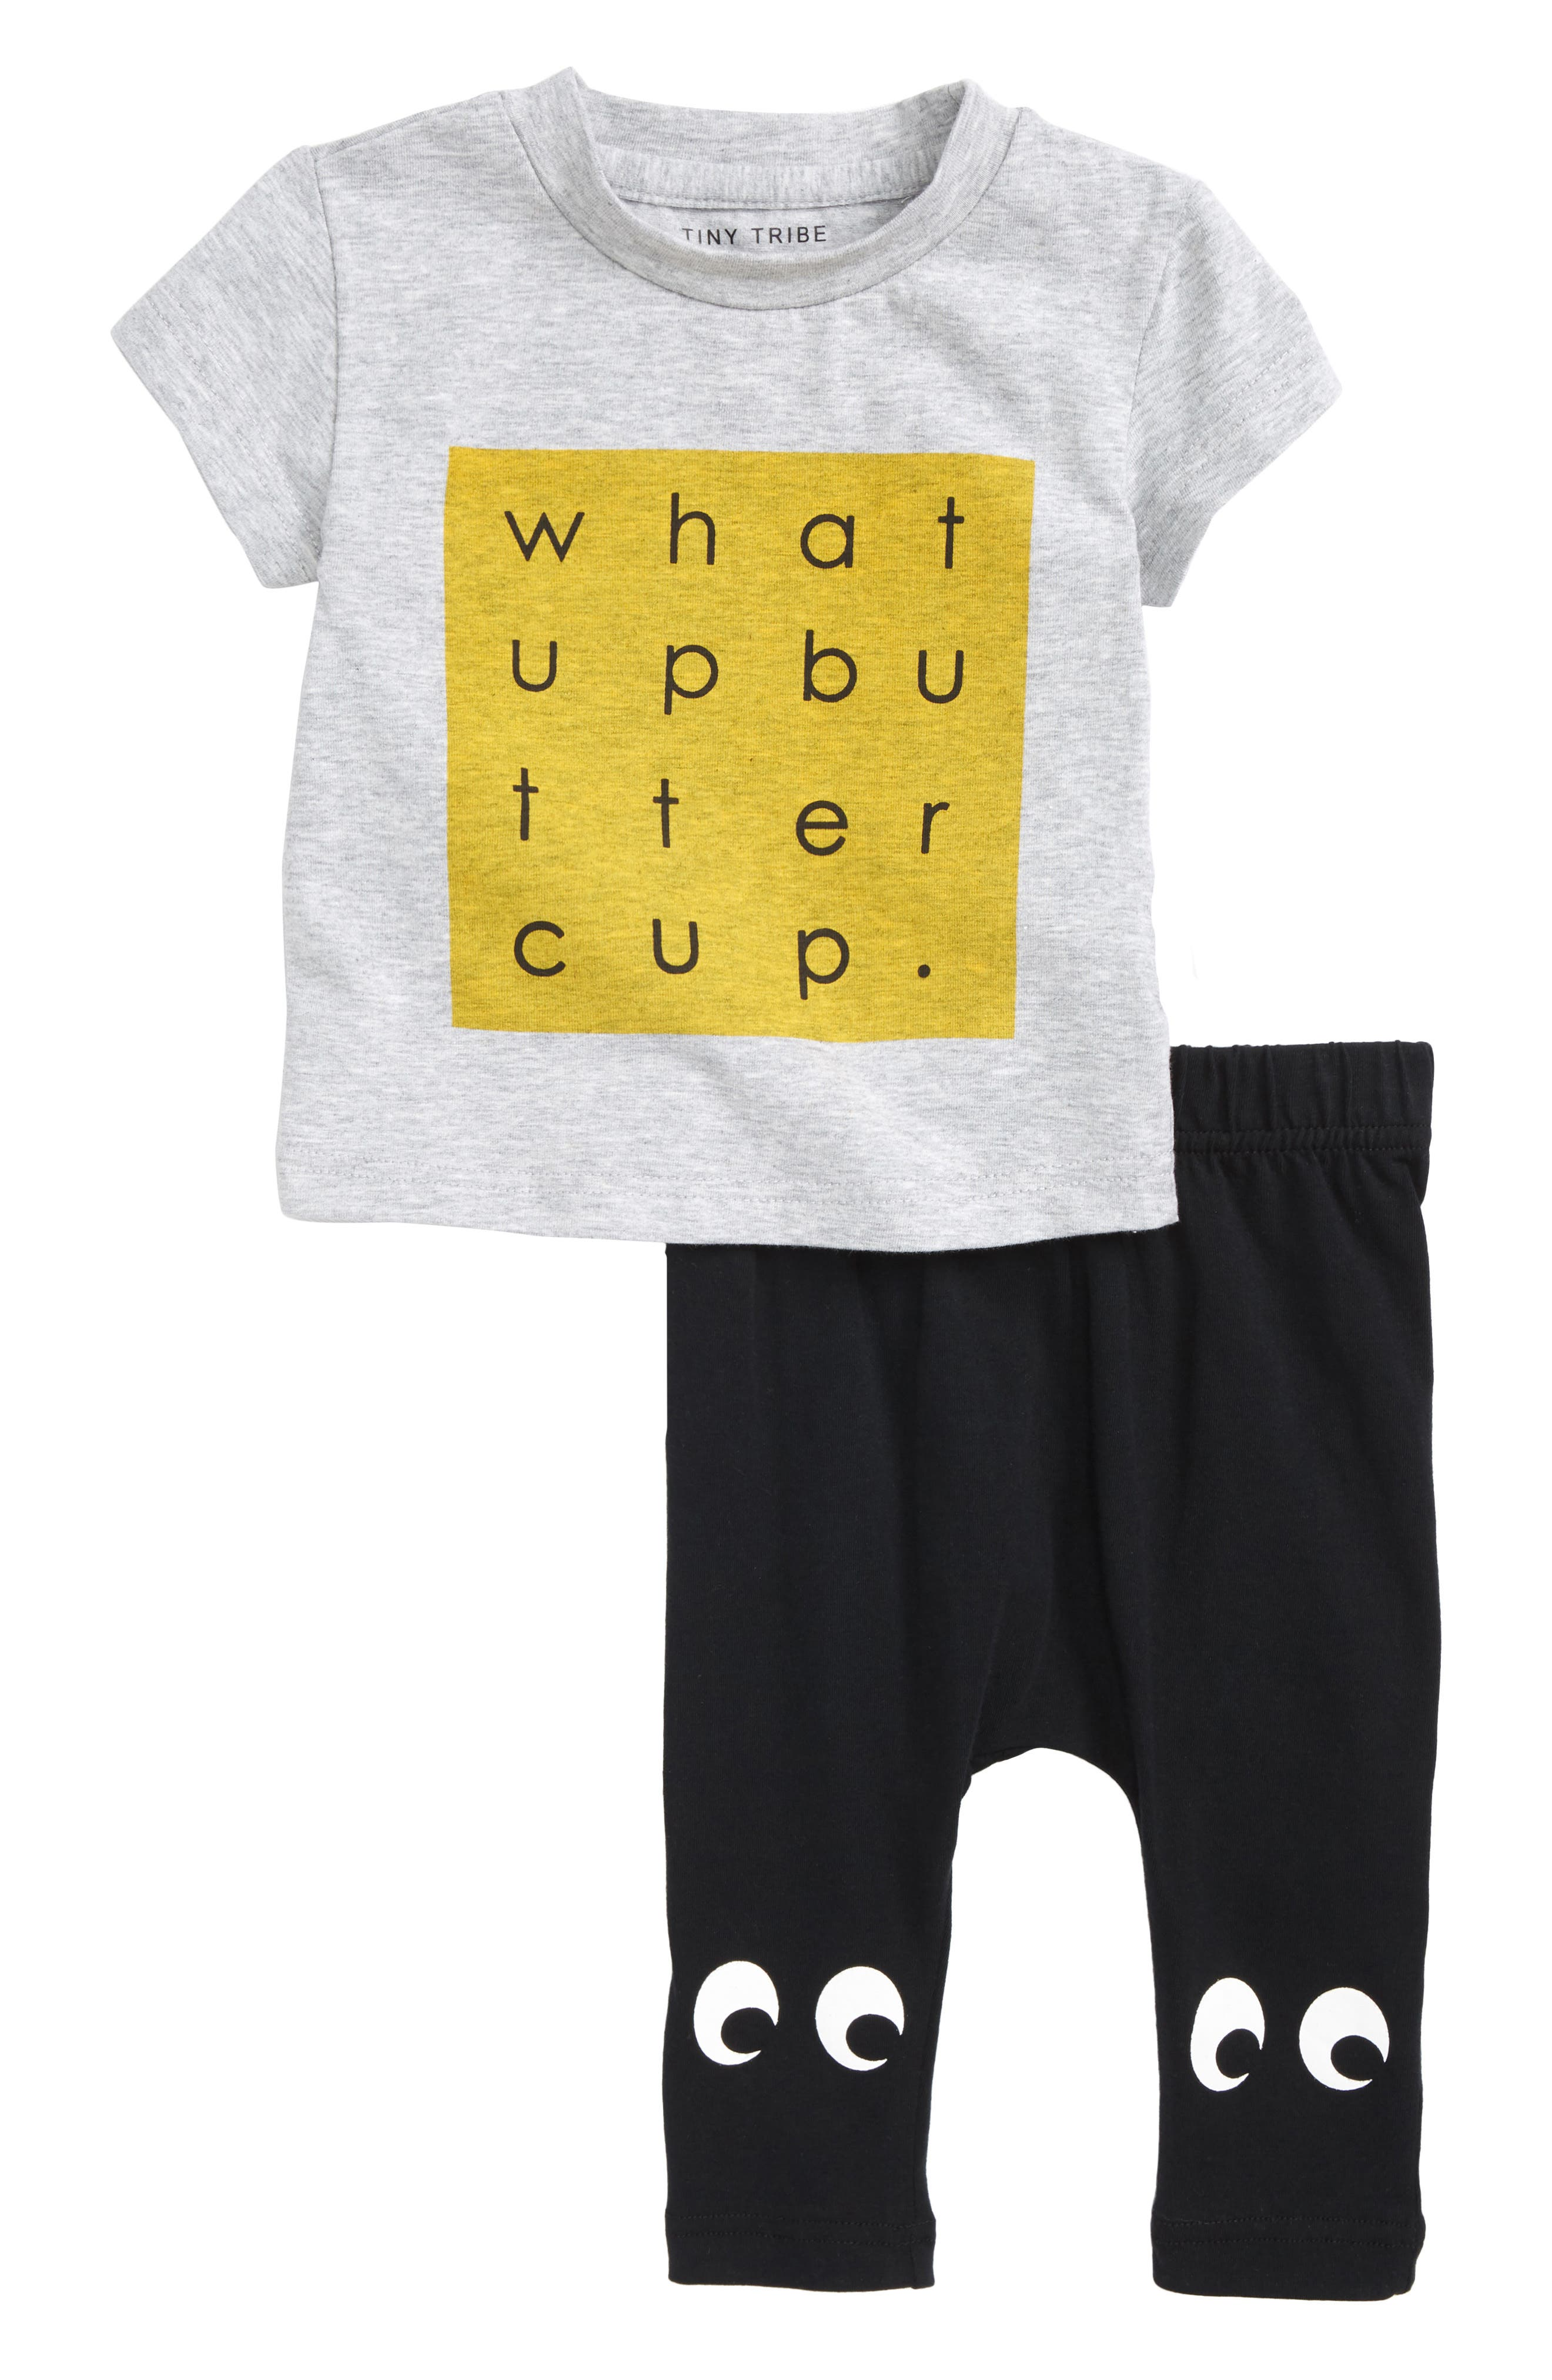 Tiny Tribe What Up Shirt & Pants Set (Baby)